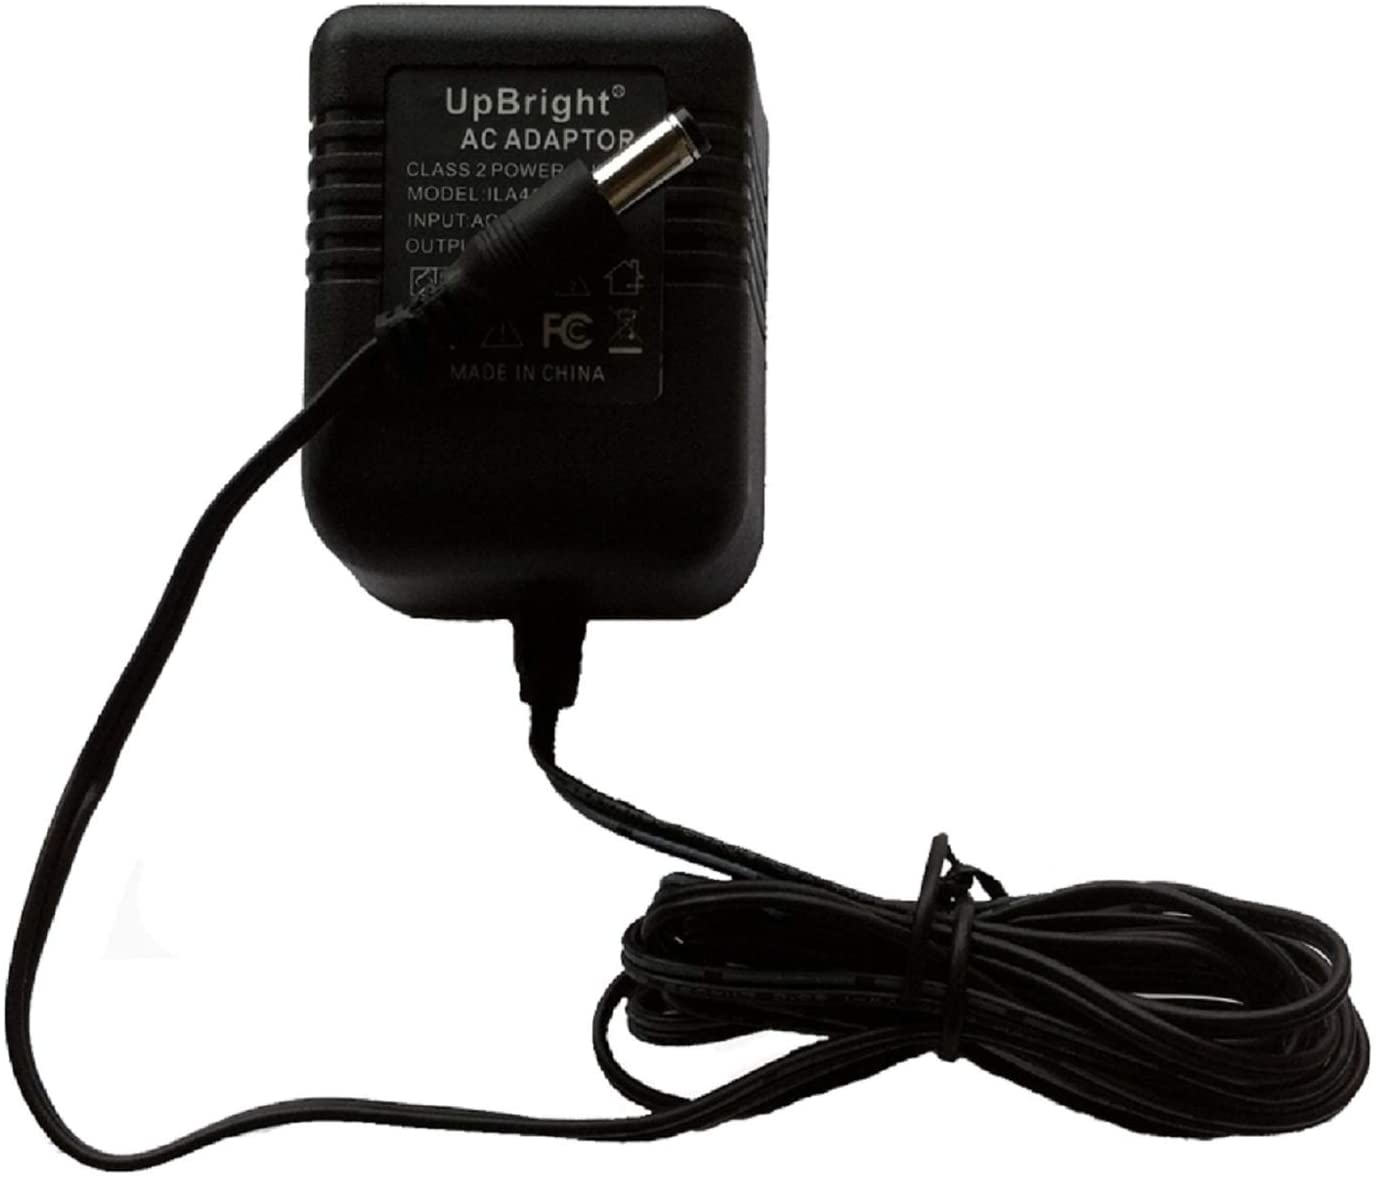 UpBright 12V AC Adapter Replacement for Westell A90-606028 AEC-4112H 085-200010 A31312C A090-606025 085-200011 A090606025 085200011 Anoma Electric AEC4112H EASTEK LT RMA-294 12VAC 1.25A Power Supply